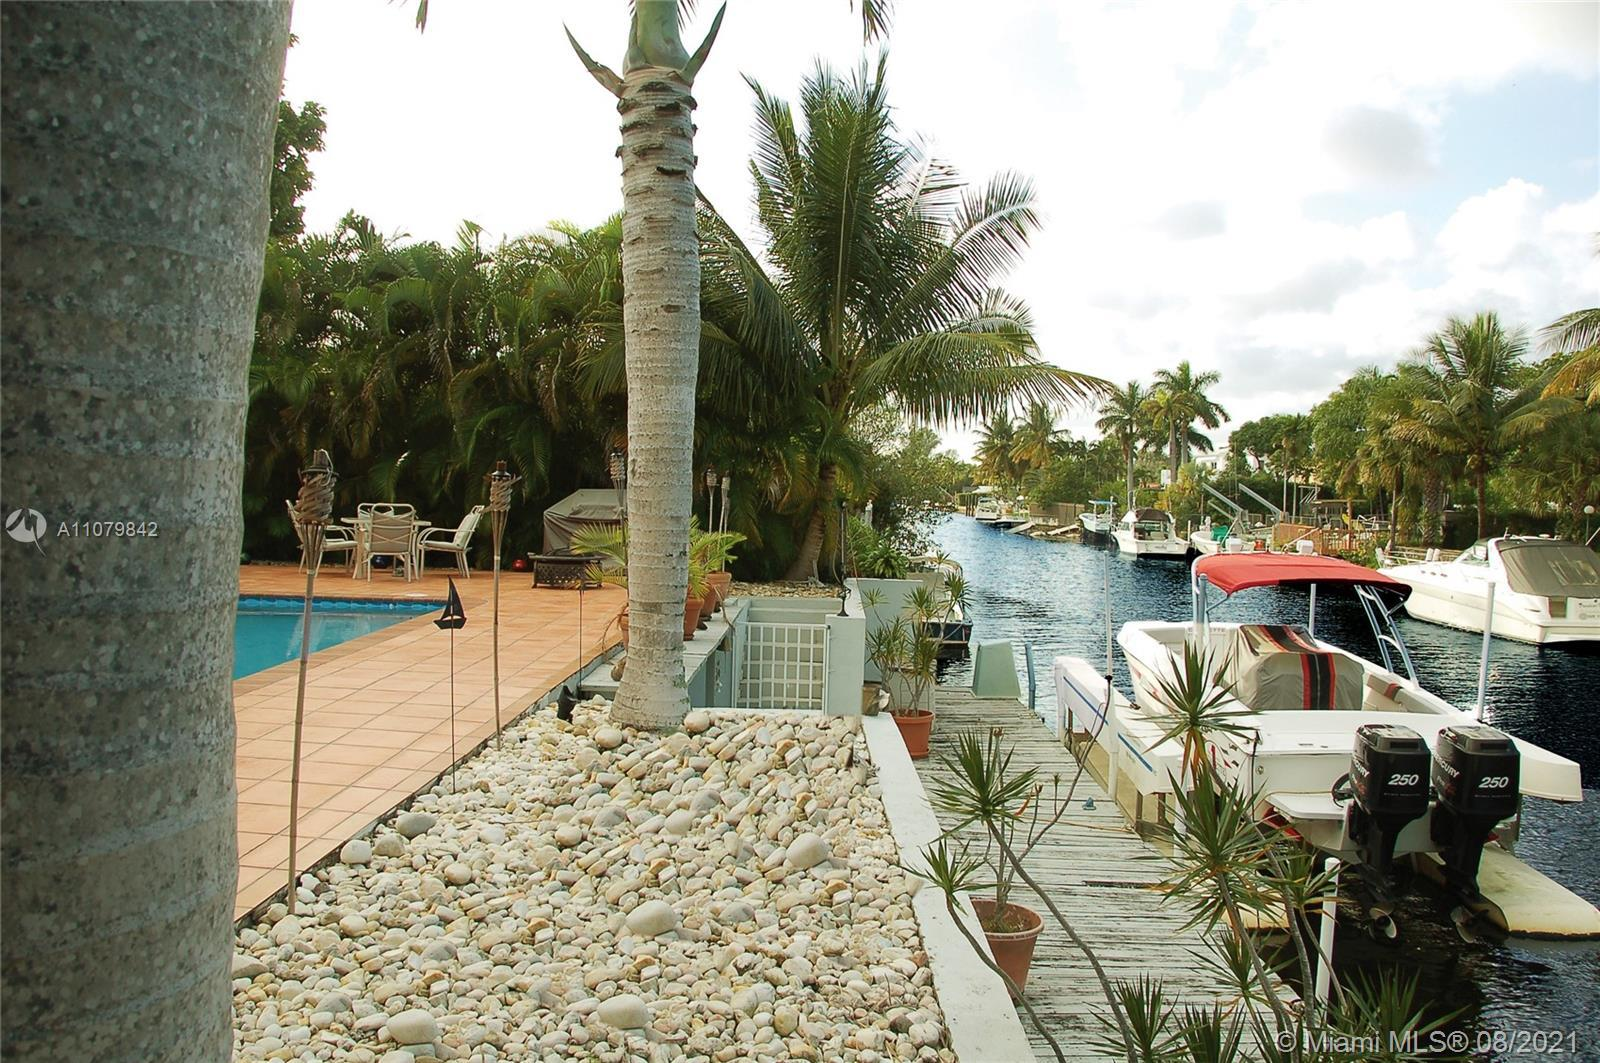 ** TENANT OCCUPIED - Do not disturb the Tenants - by appointment ONLY ** Great combination...WATERFR